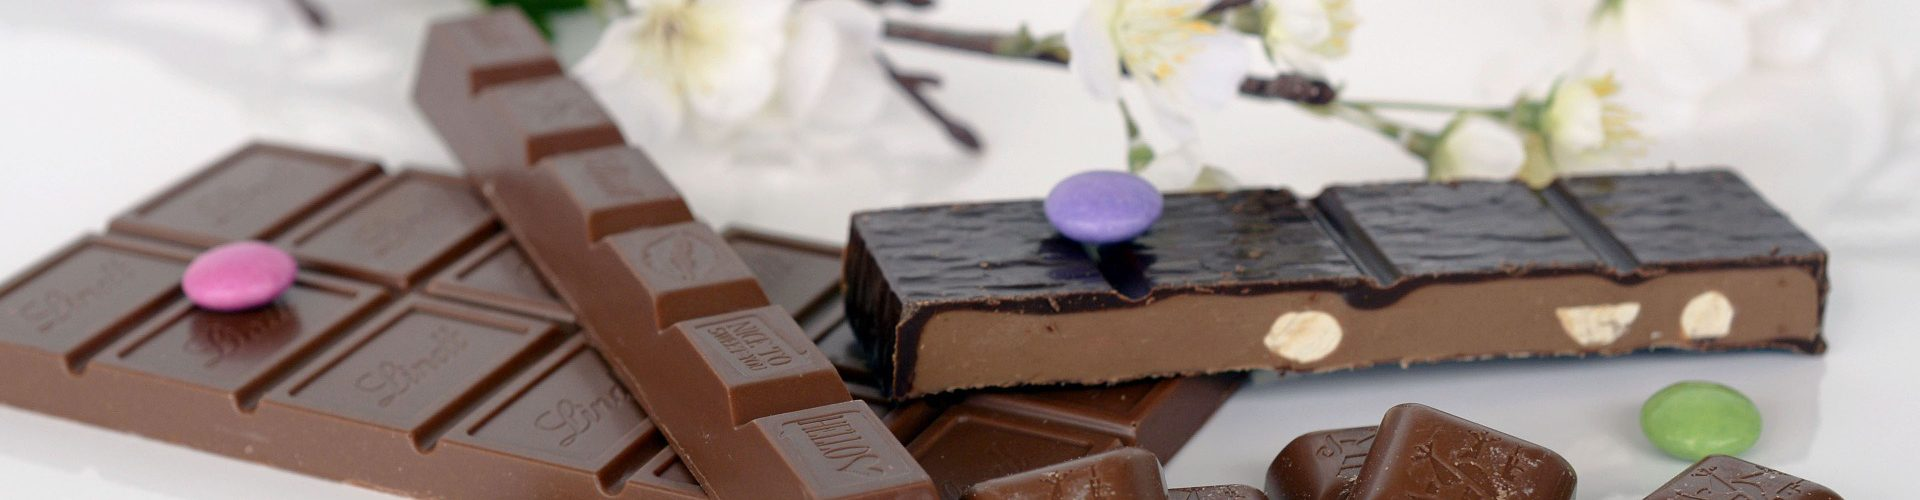 Top 5 Most Productive Countries for Chocolate